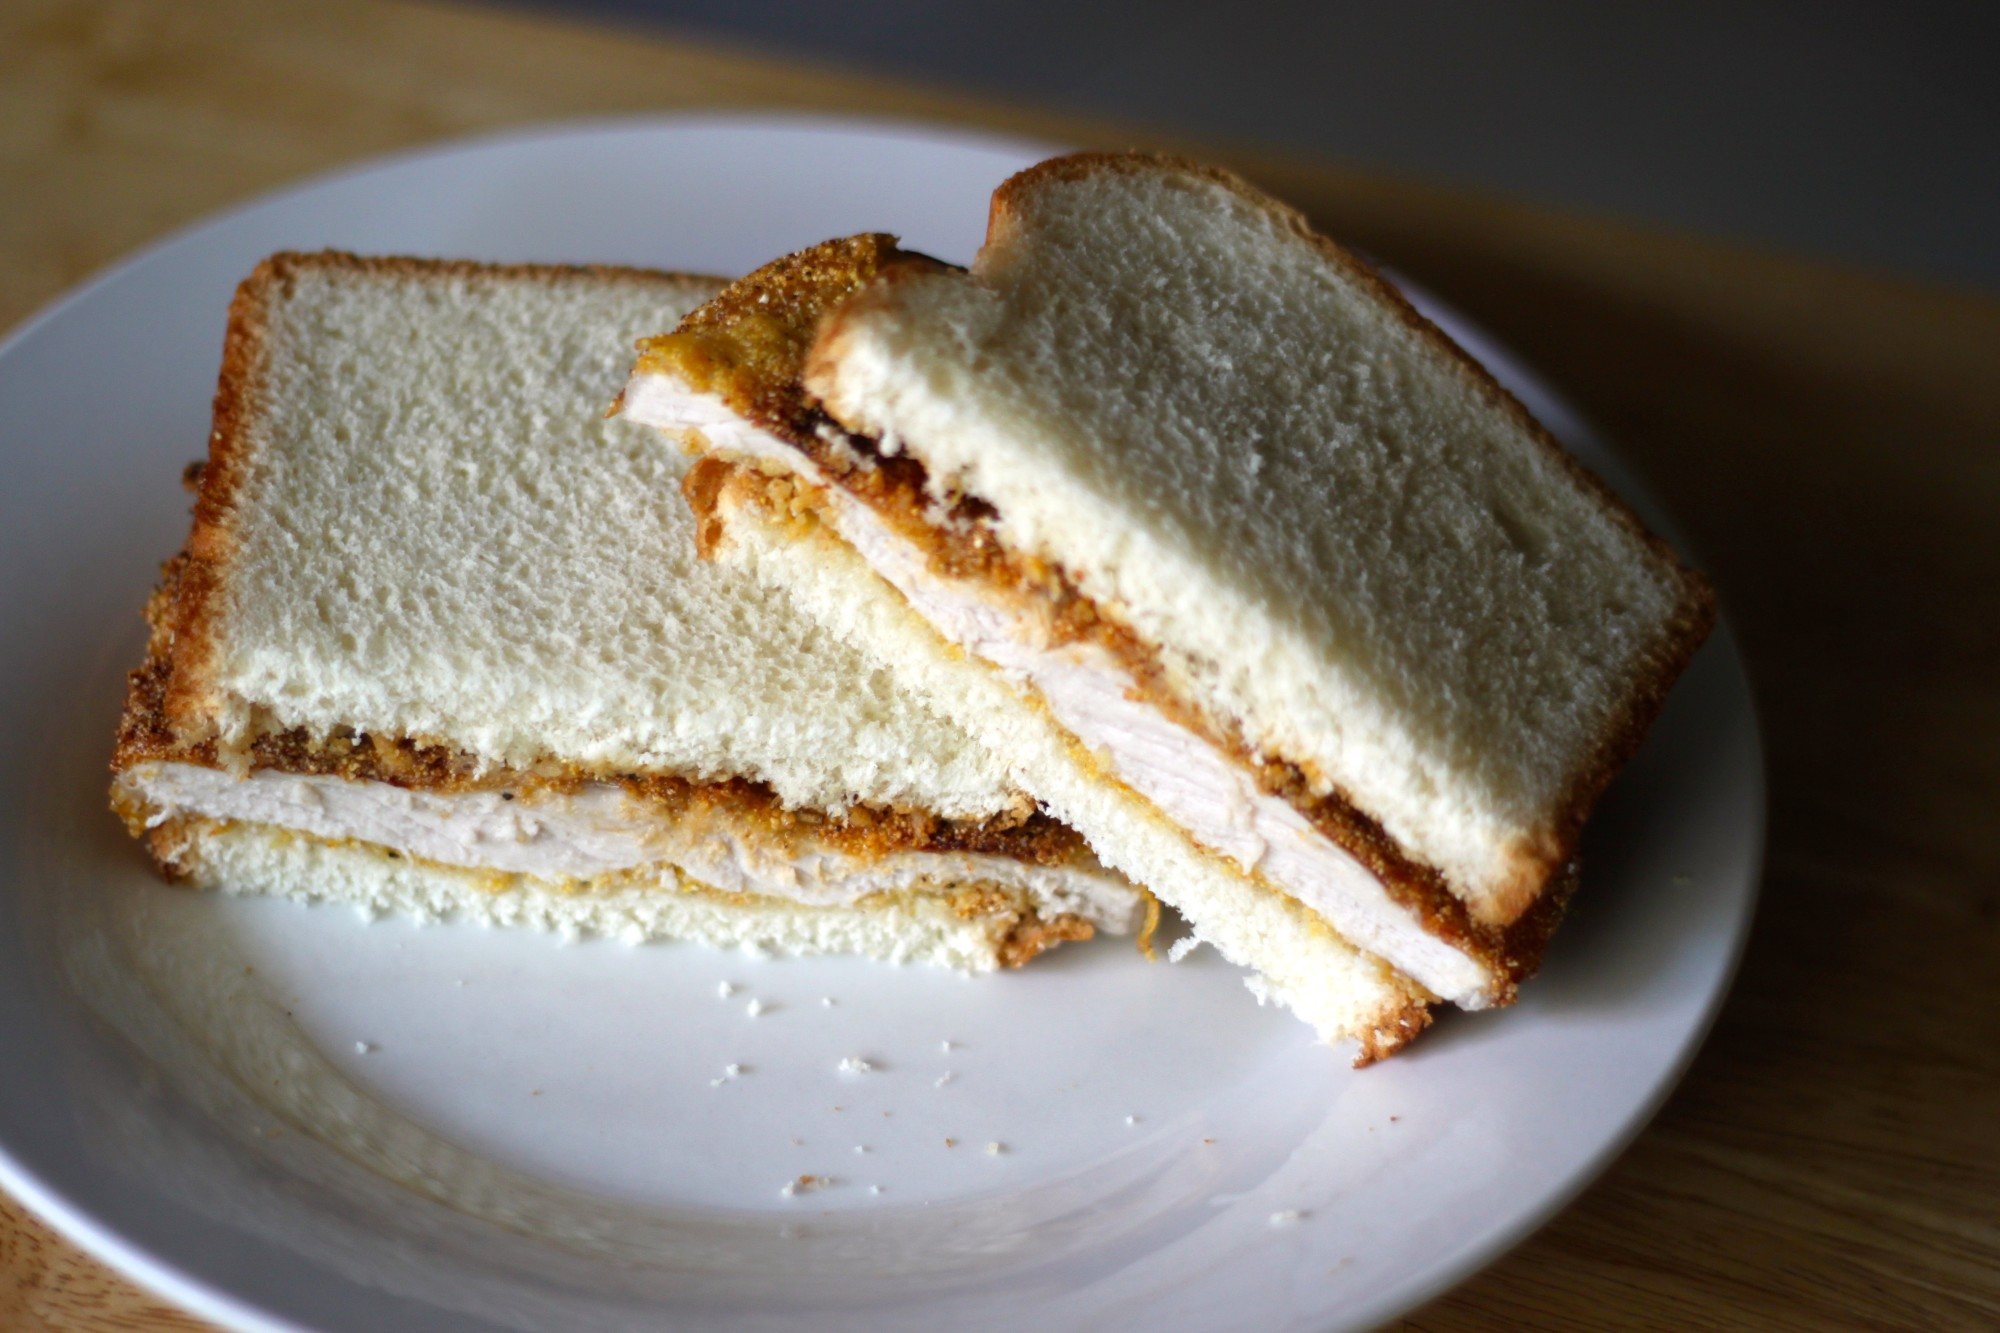 National Scrapple Day | Cornmeal-Fried Pork Sandwich